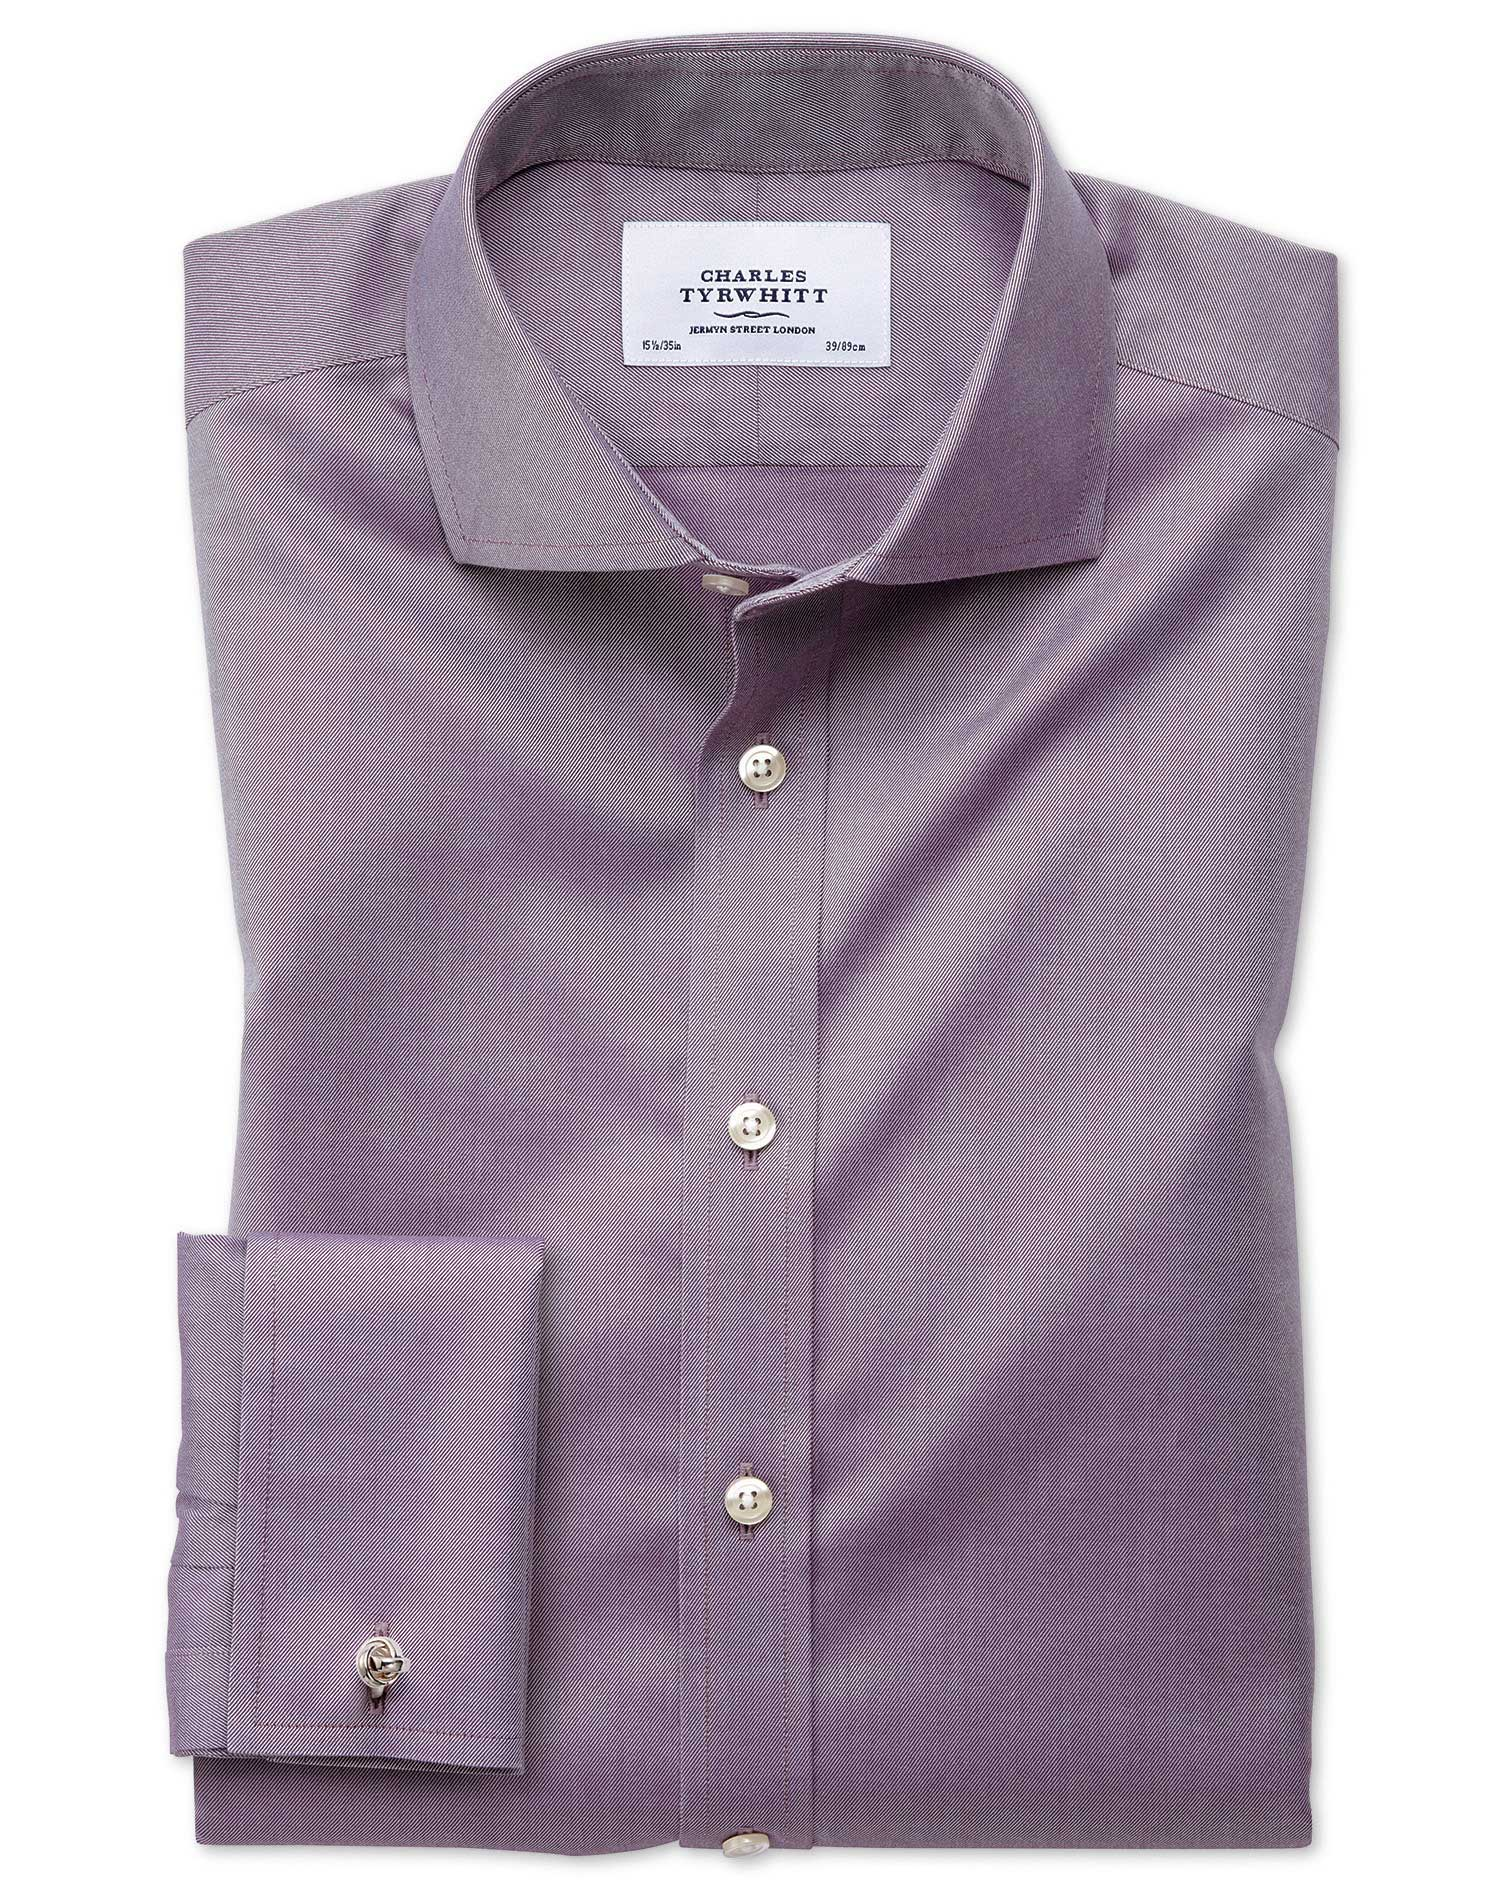 Extra Slim Fit Cutaway Non-Iron Twill Dark Purple Cotton Formal Shirt Double Cuff Size 15.5/33 by Ch